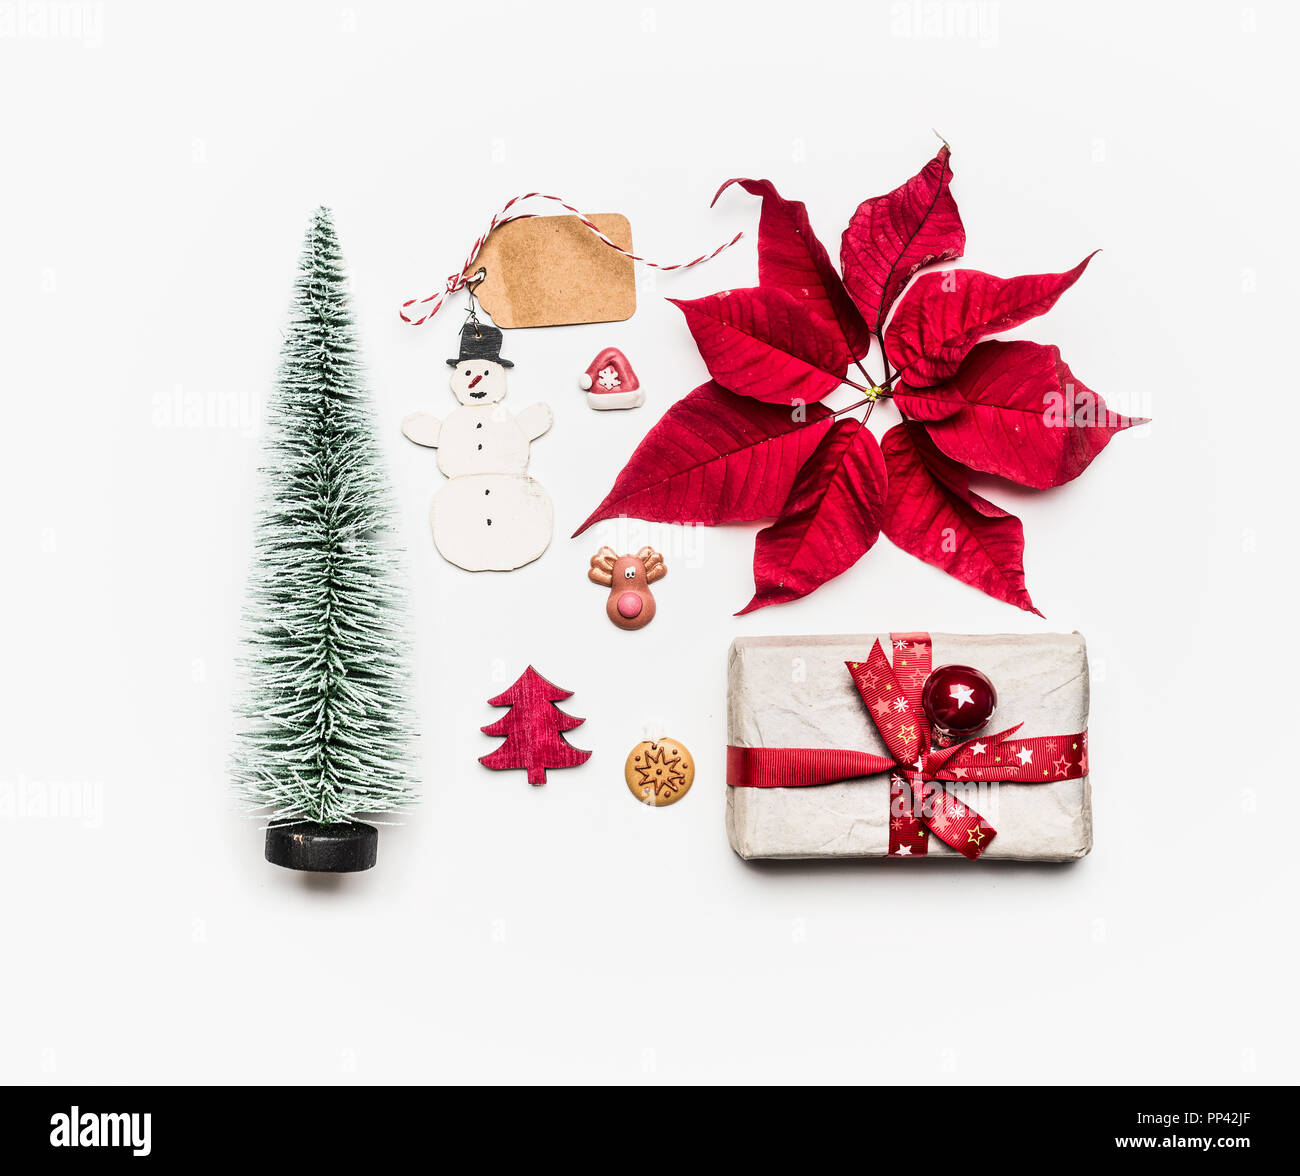 various holiday objects gift christmas tree decorations red poinsettia snowman tags on white background flat lay top view